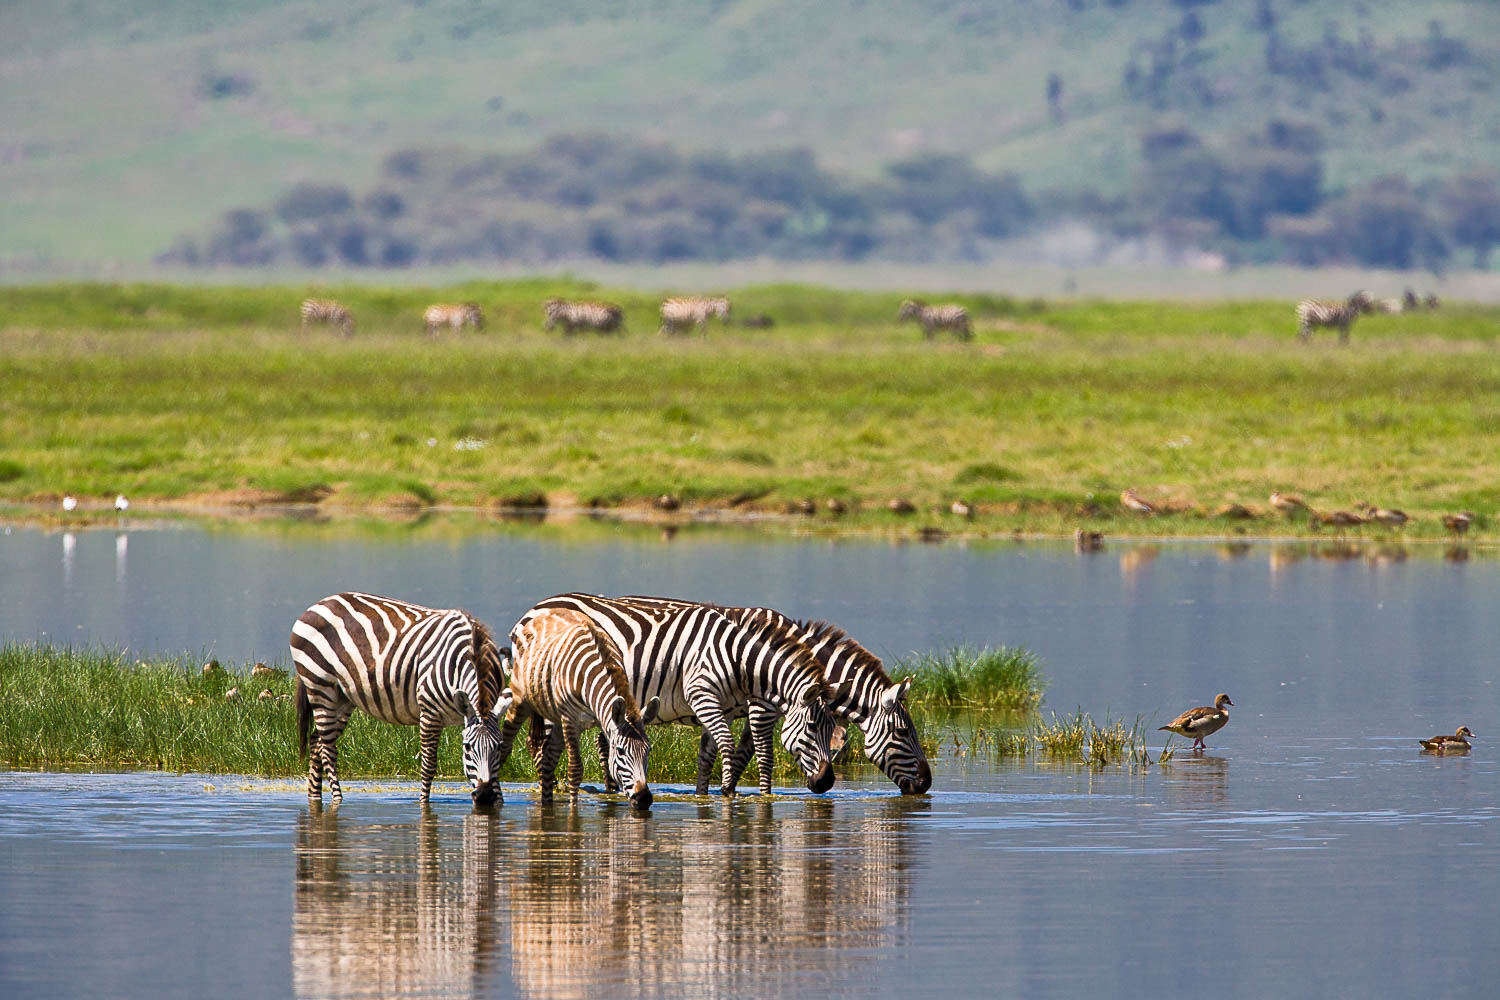 Photo of drinking zebras in the Ngorongoro Crater in Tanzania